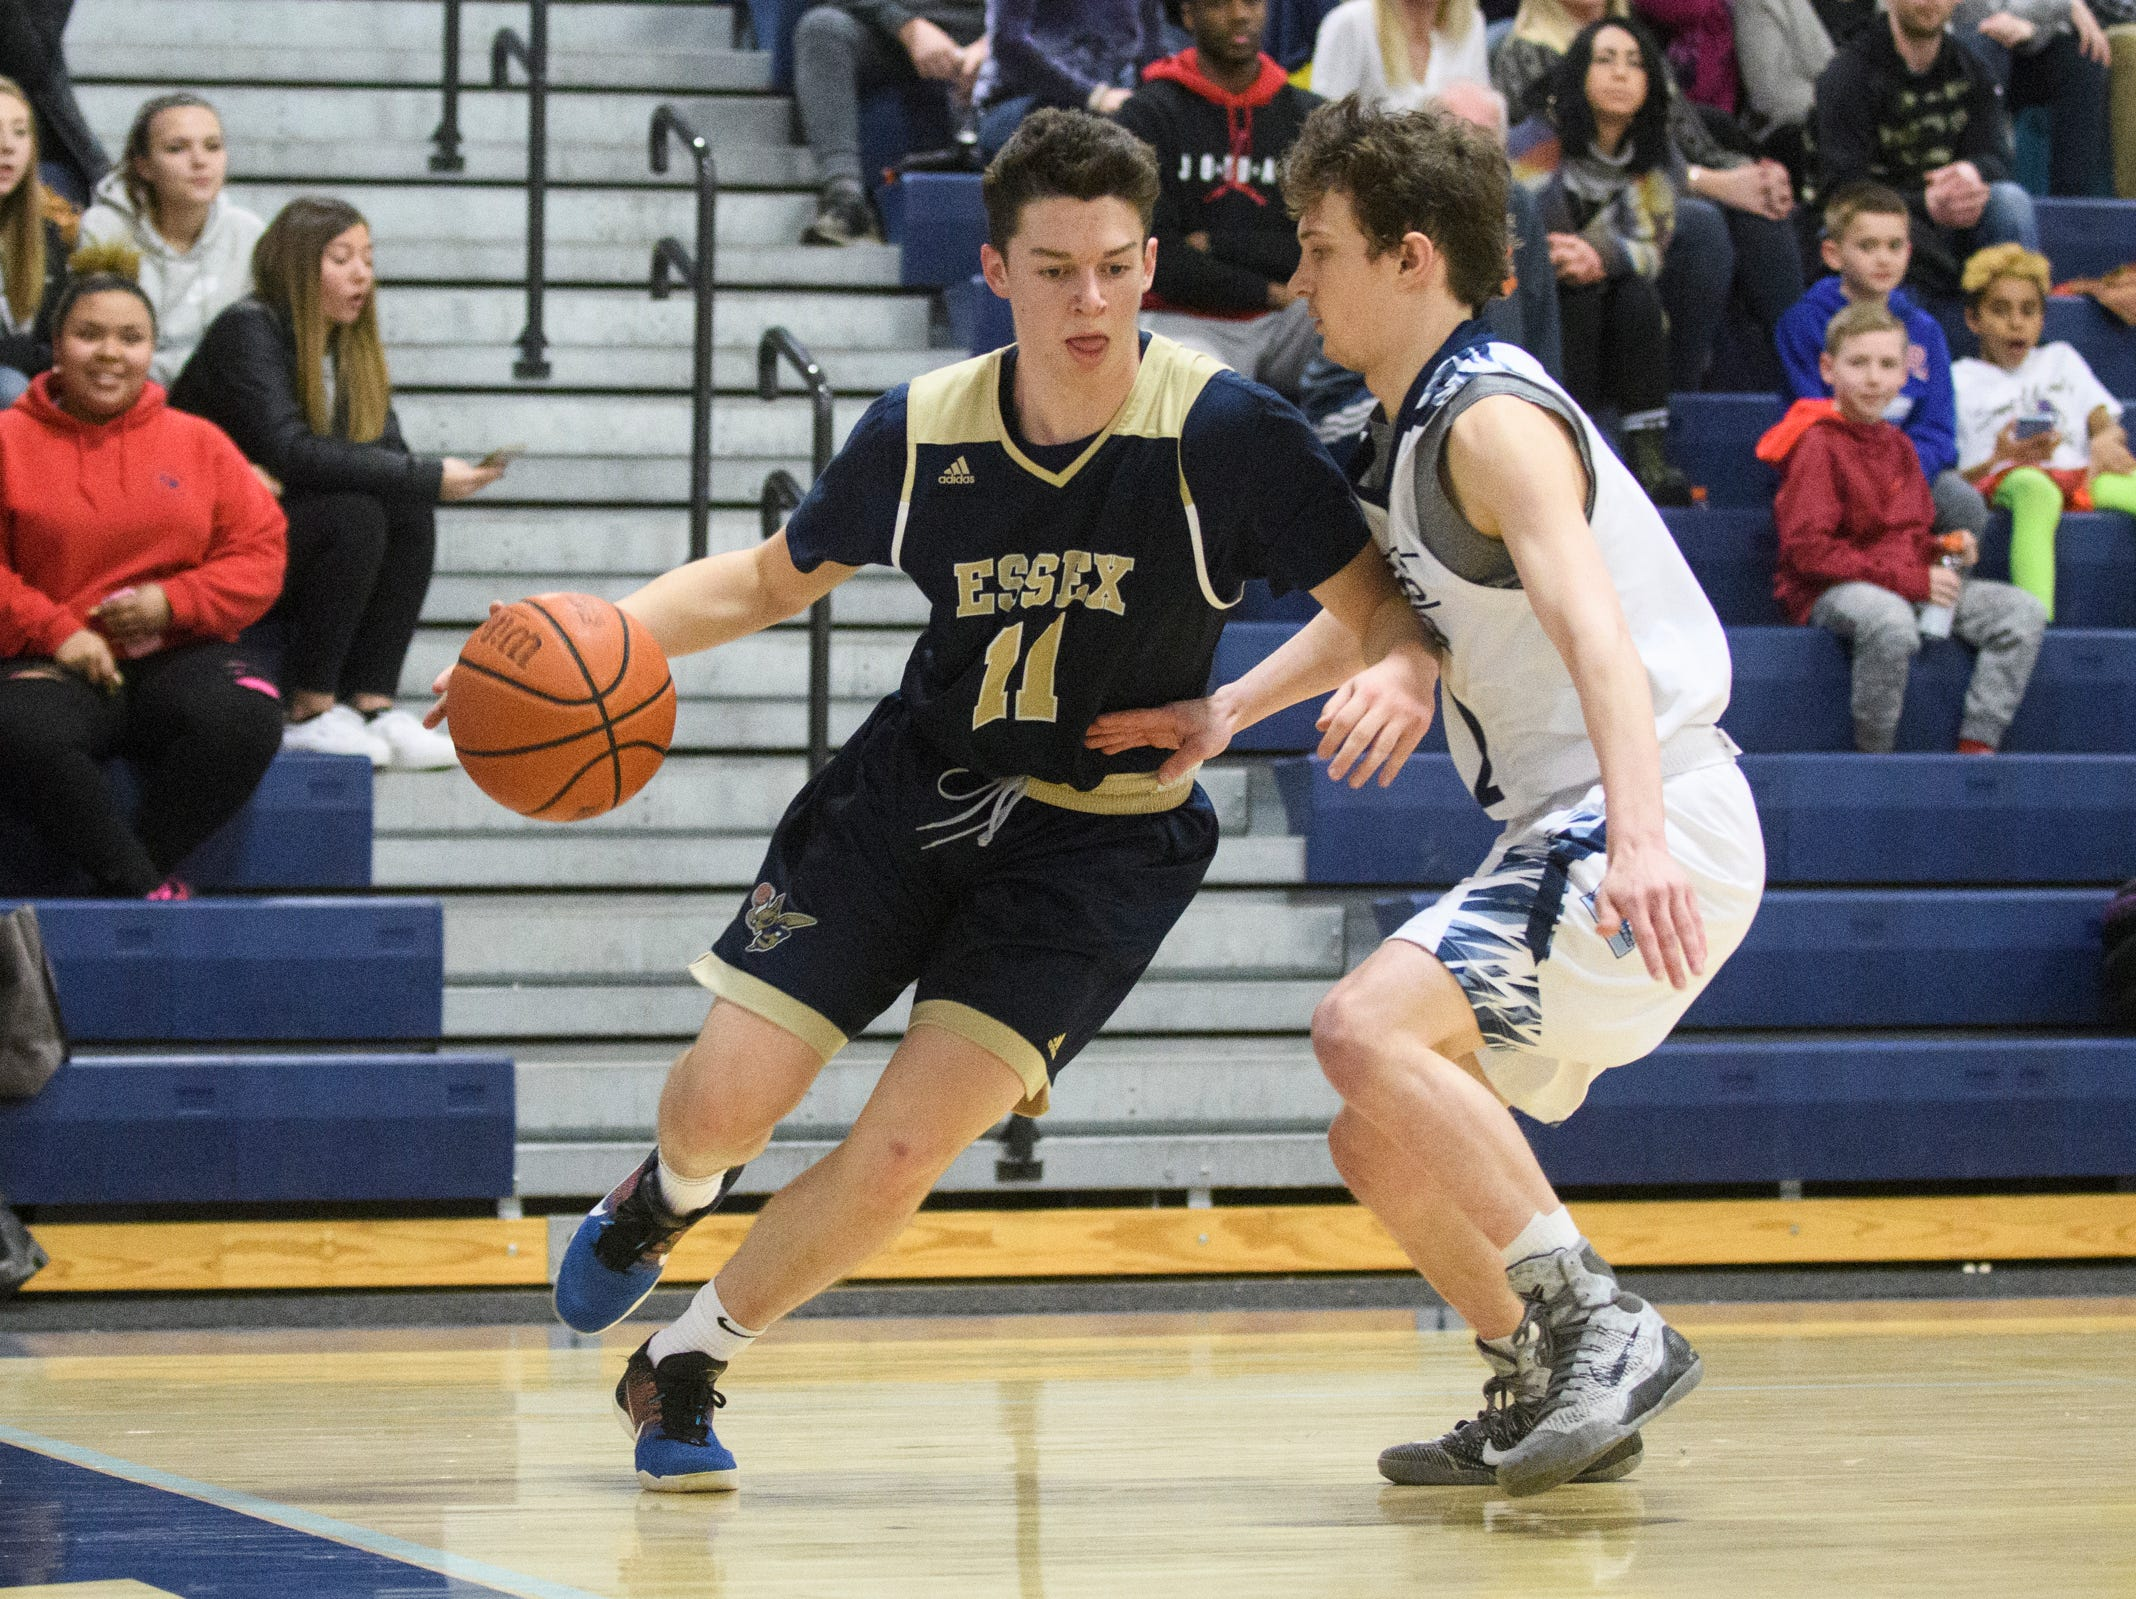 Essex's Parker Whitney (11) drives to the hoop past MMU's Riley Smith (2) during the boys basketball game between the Essex Hornets and the Mount Mansfield Cougars at MMU High School on Wednesday night February 13, 2019 in Jericho, Vermont.